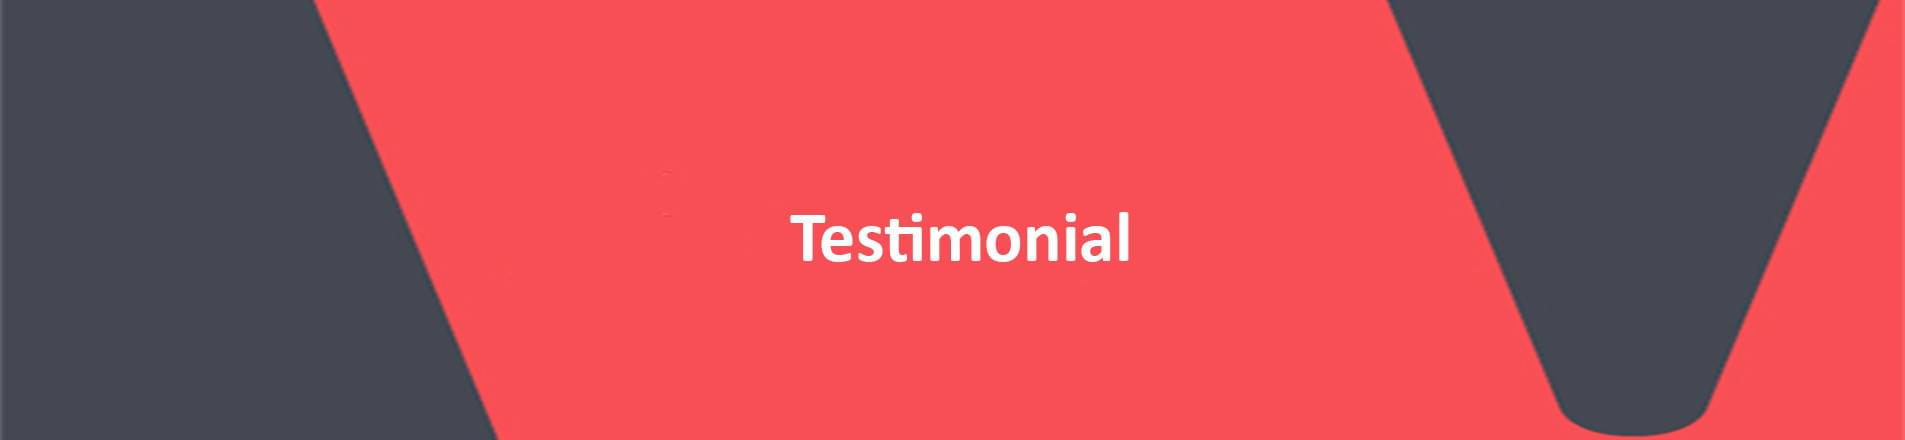 The word Testimonial on red VERCIDA branded background